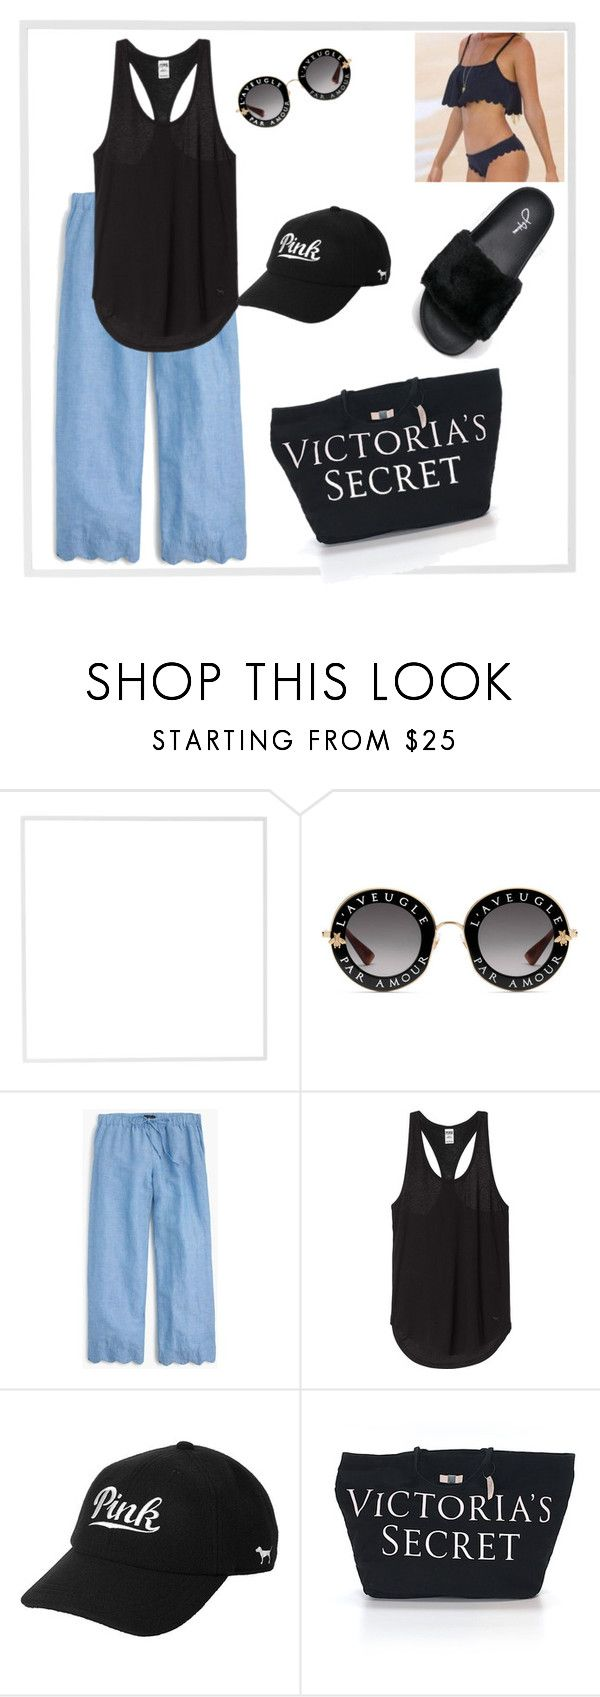 """""""Today's OOTD"""" by gigi-sessions ❤ liked on Polyvore featuring Menu, Gucci, J.Crew and Victoria's Secret"""